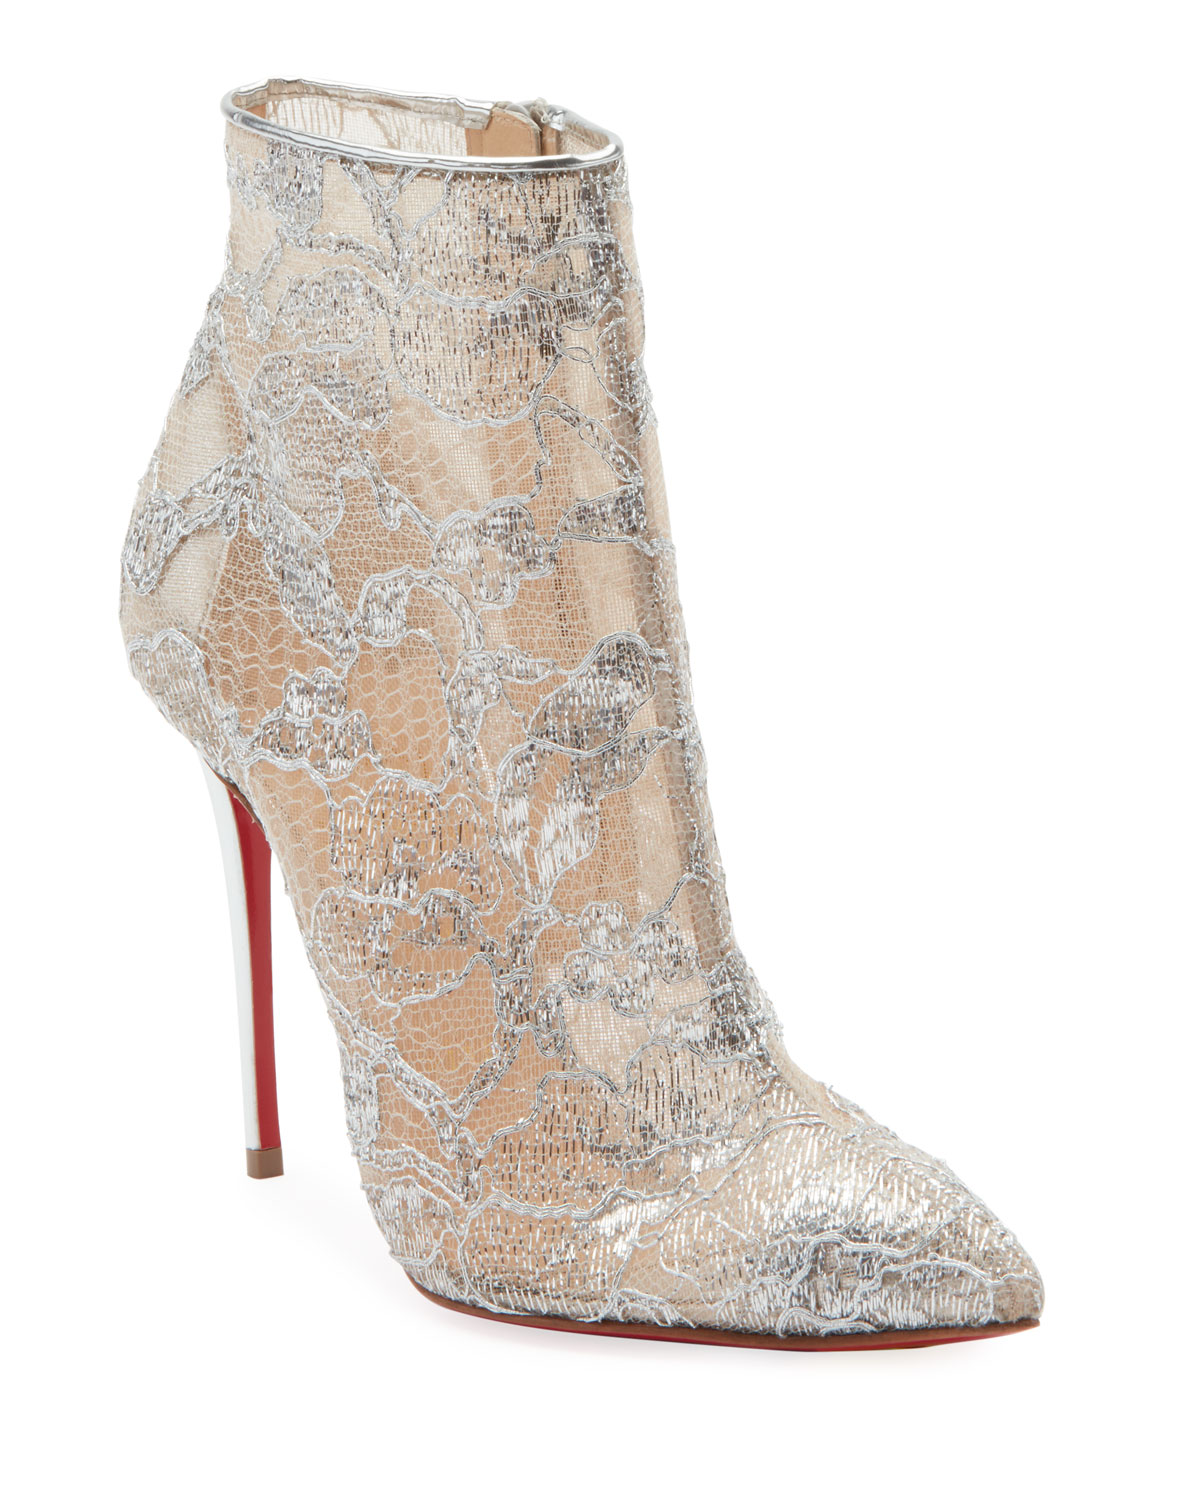 3db2d7c53c28 Christian Louboutin Gipsybootie Metallic Lace Red Sole Ankle Boot ...